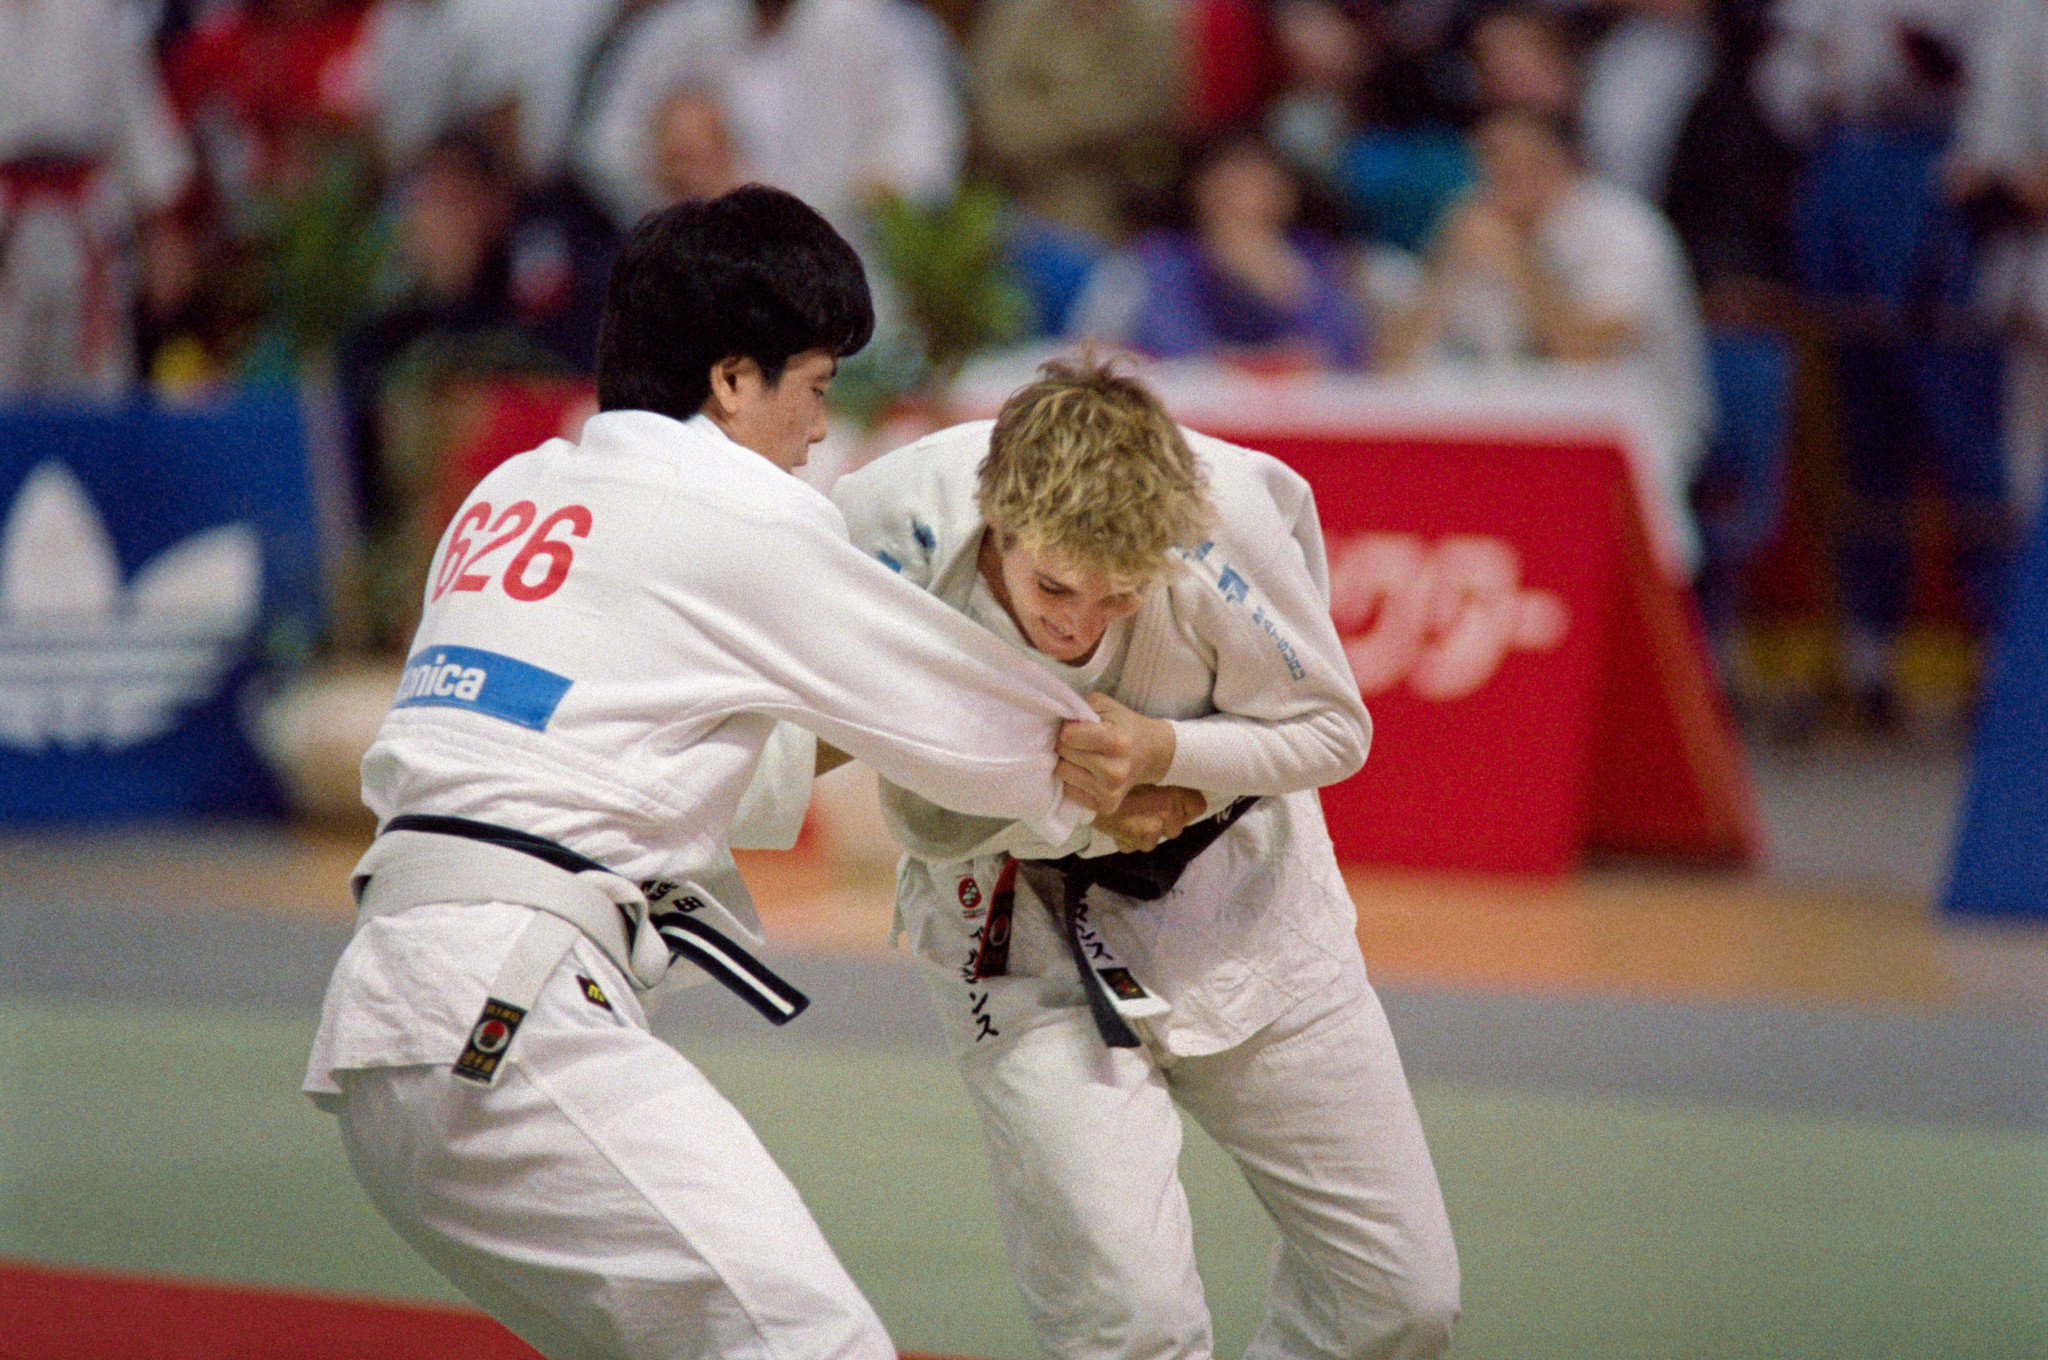 Belgium's Ingrid Berghmans (R) fights Japan's Yoko Tanabe (L) during the Judo World Championships in Belgrad, on October 15, 1989 ©Getty Images